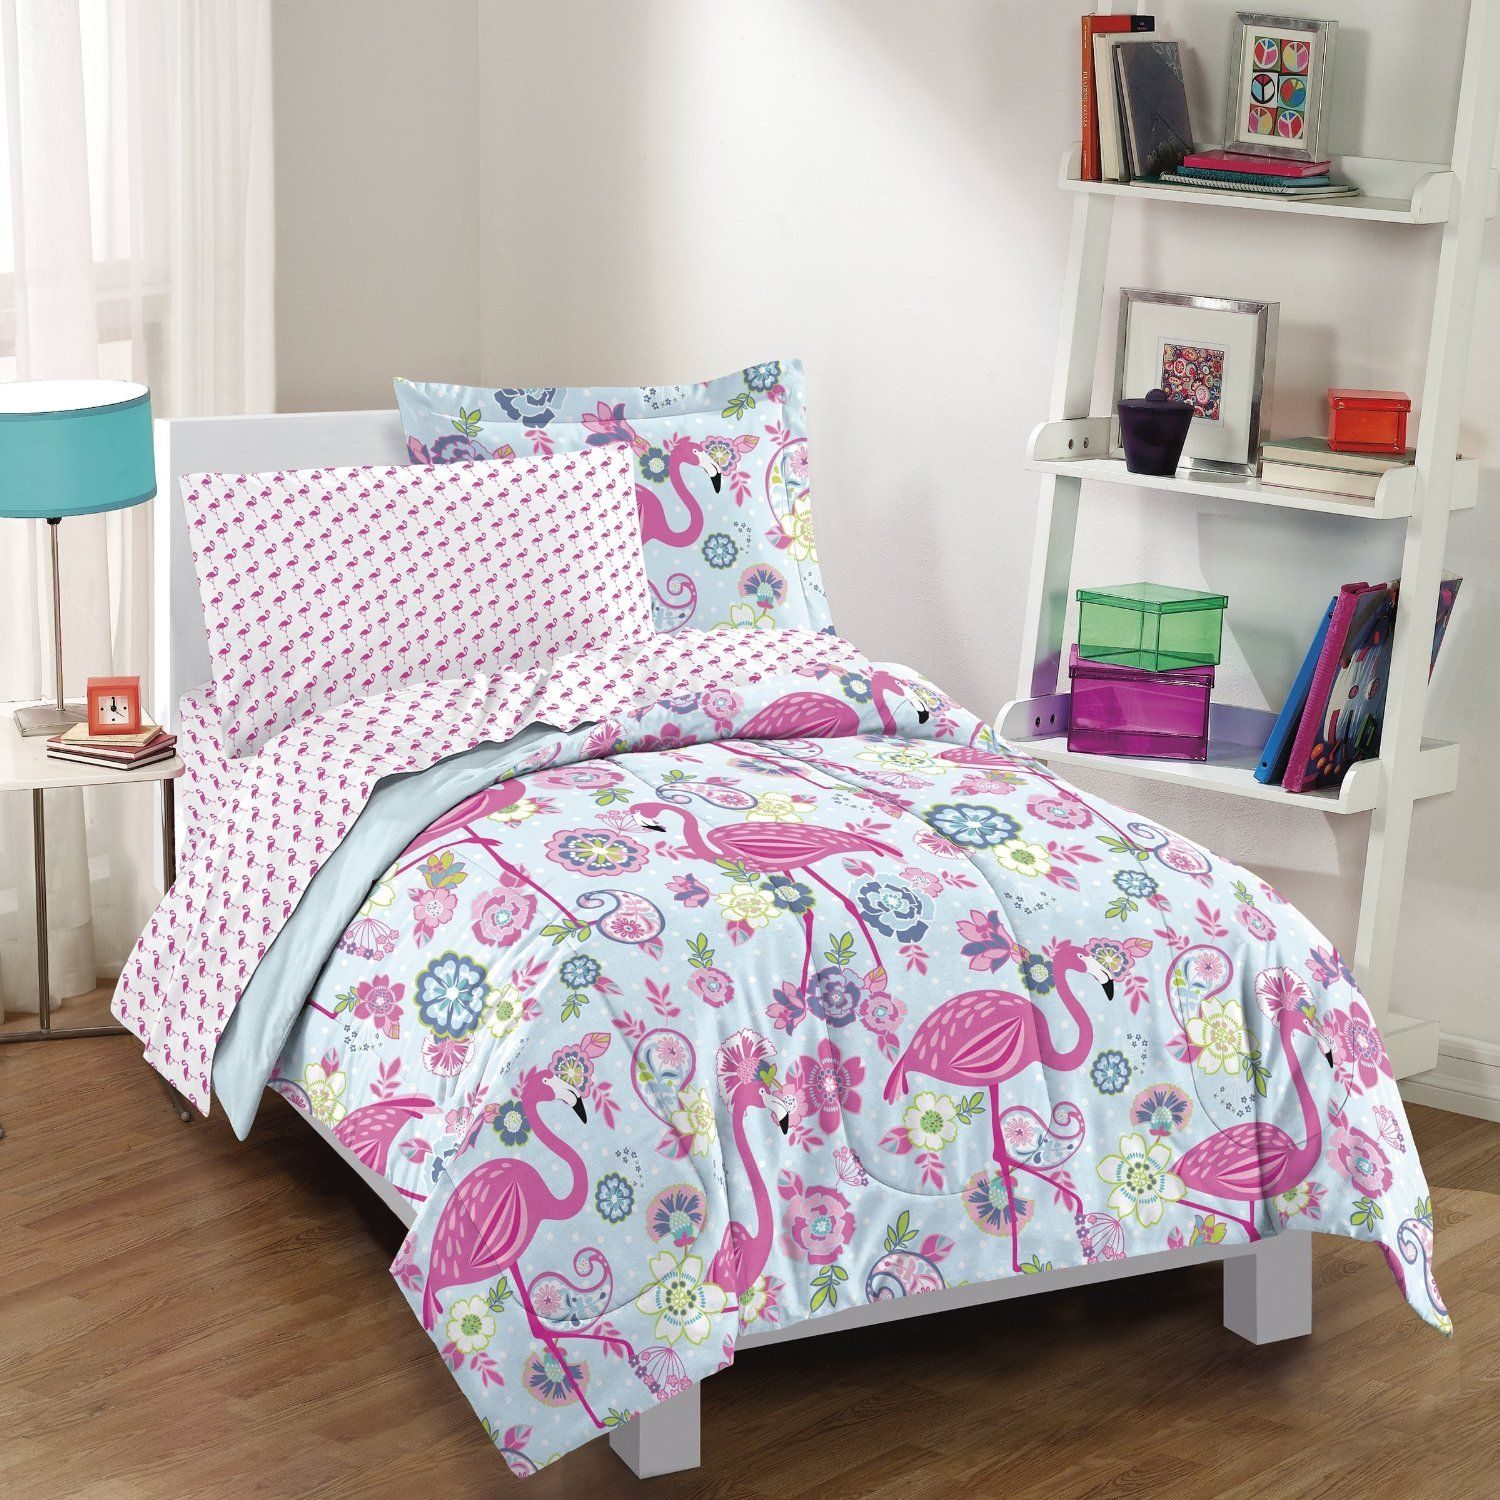 amazoncom dream factory flamingo comforter set pink twin home u0026